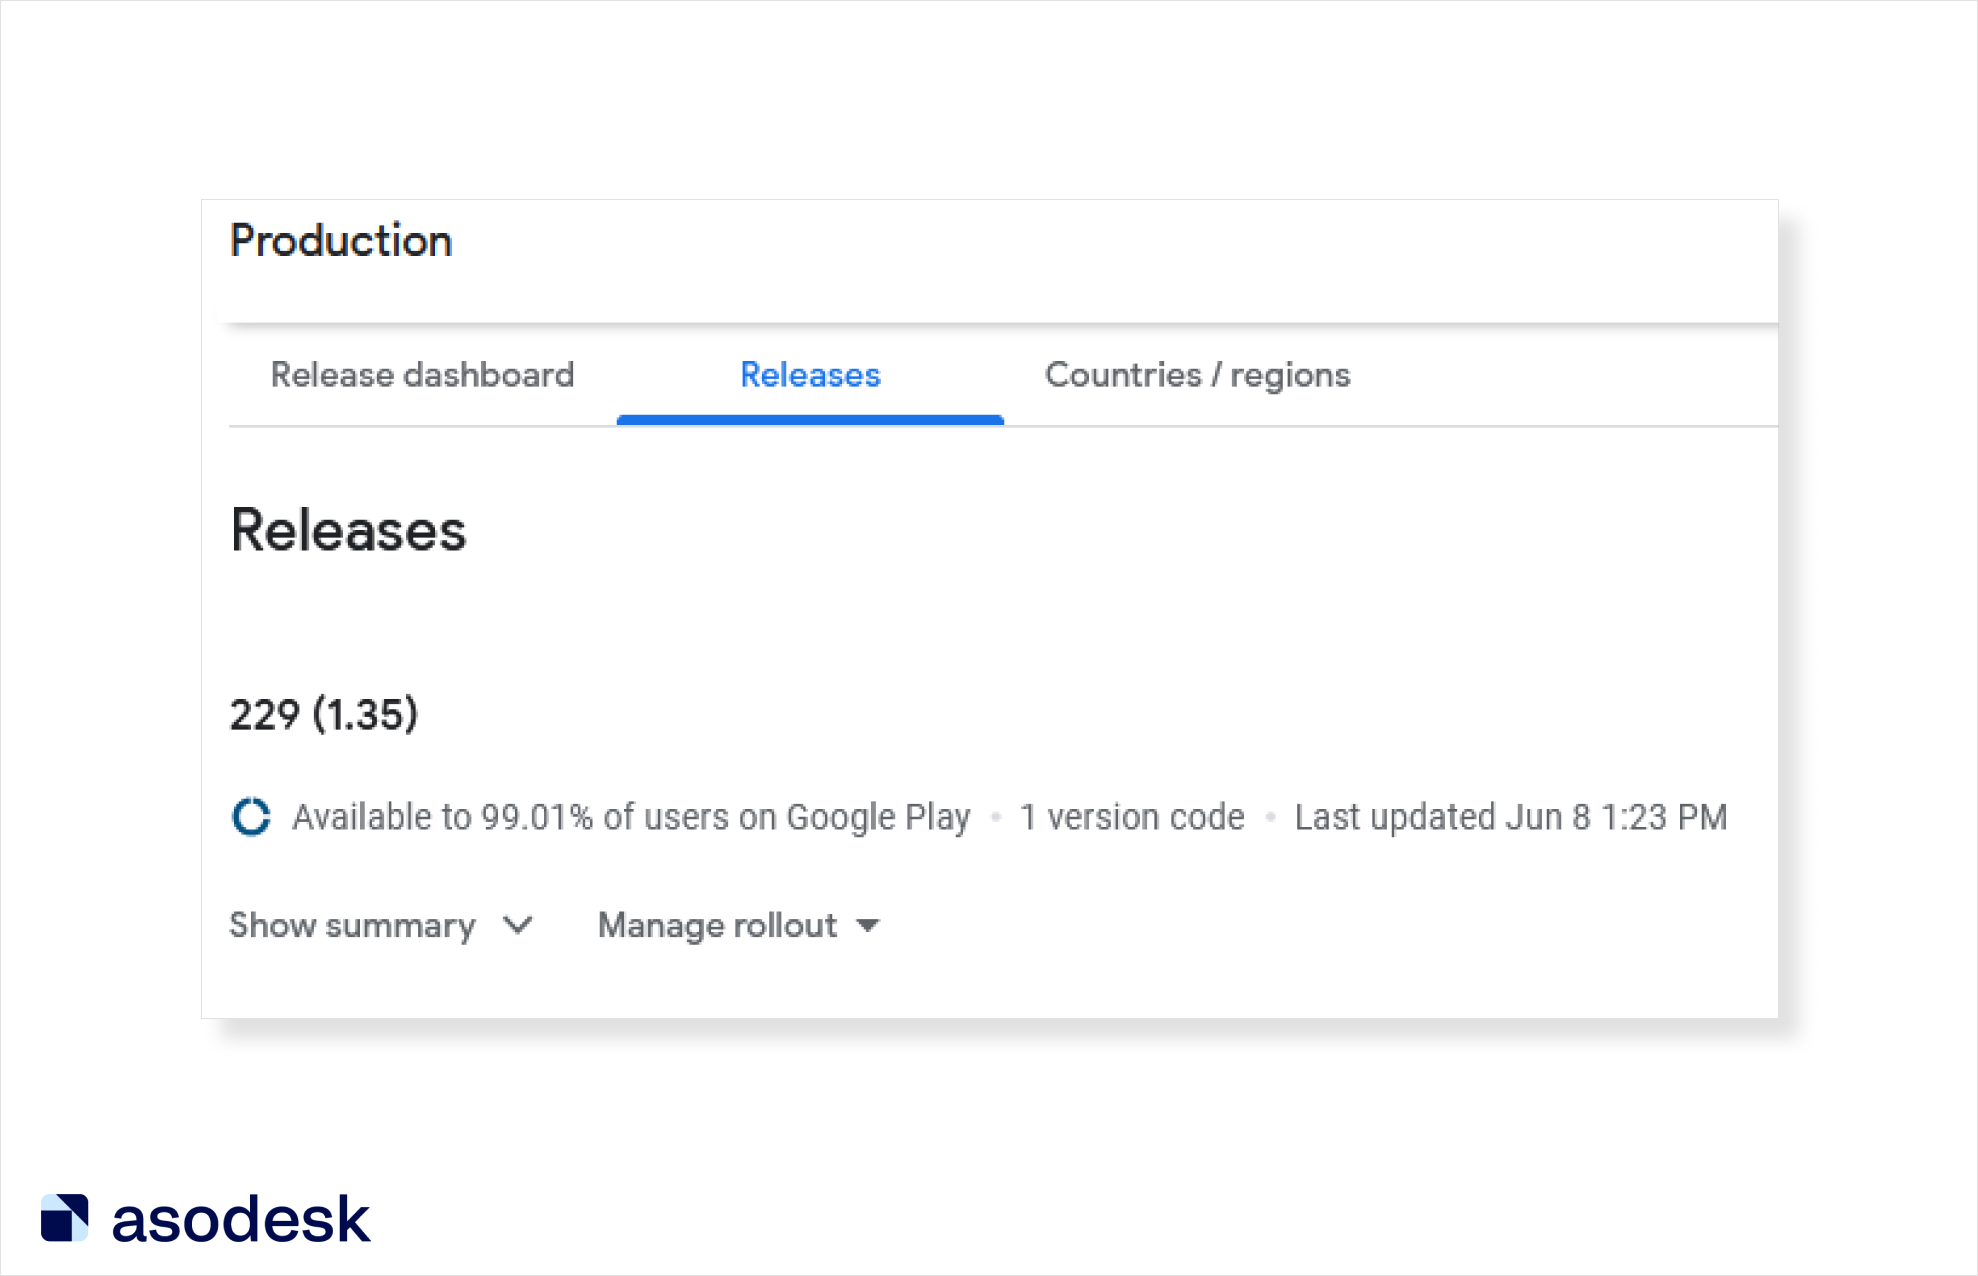 On Google Play, you can choose which part of the audience to release to